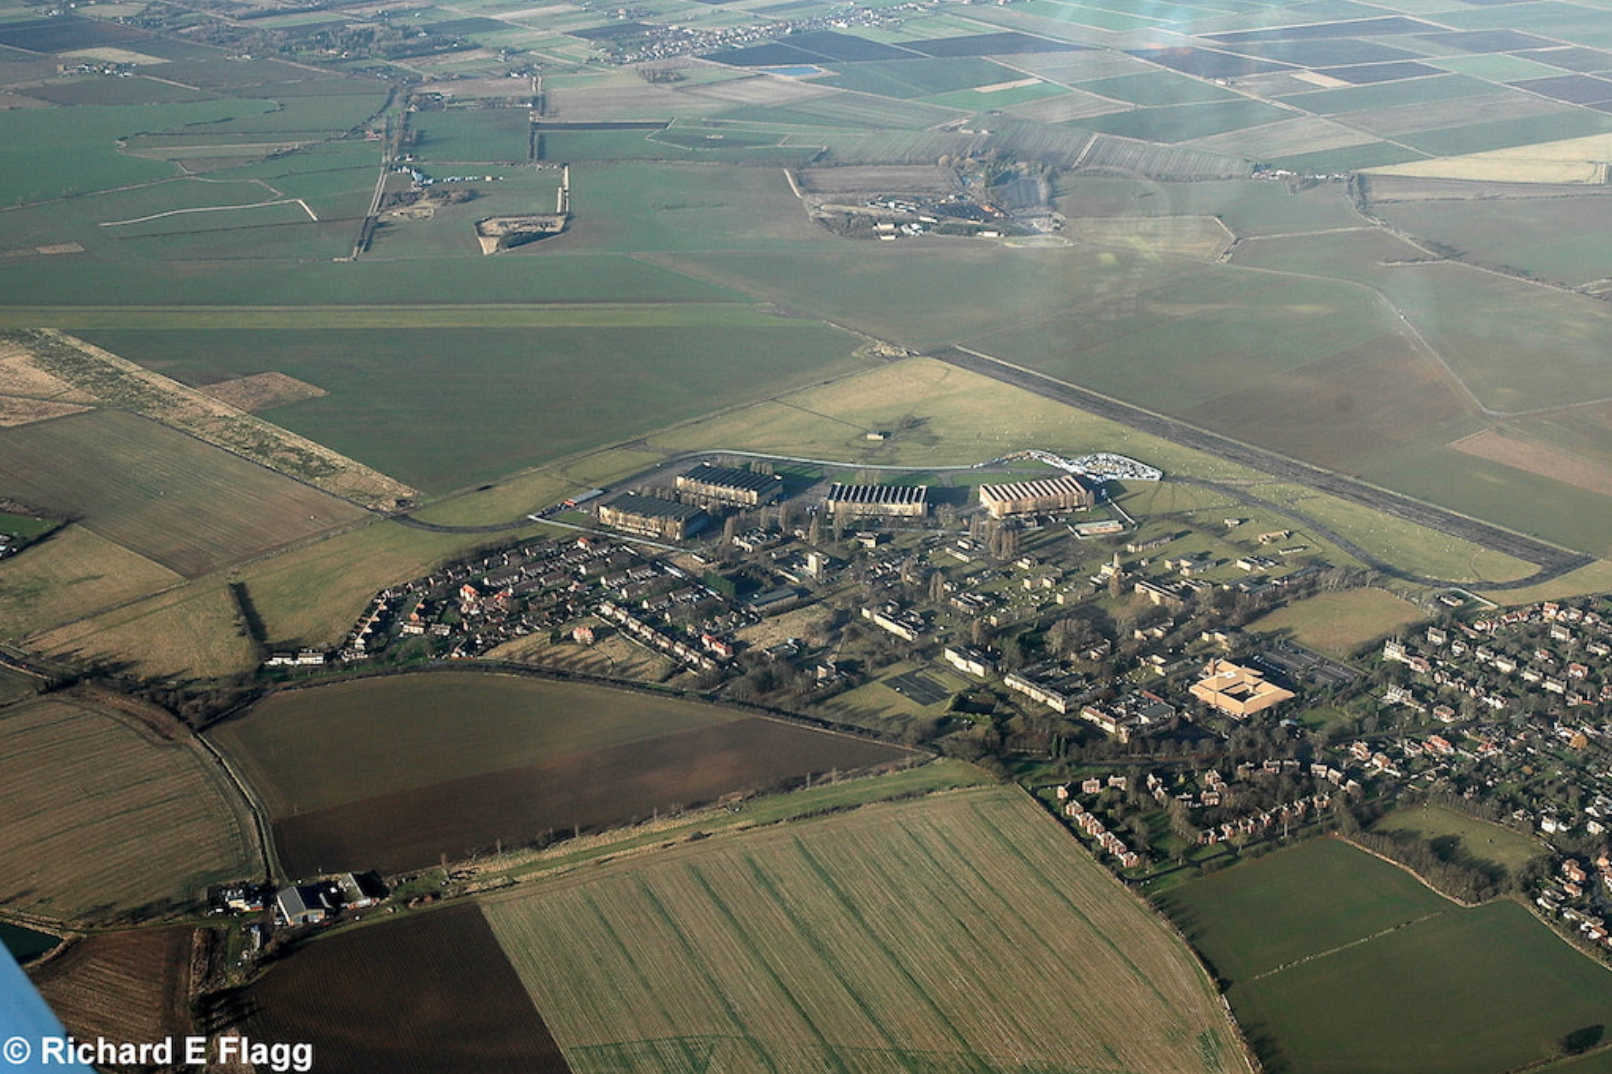 006Aerial View of RAF Upwood Airfield - 5 January 2008.png